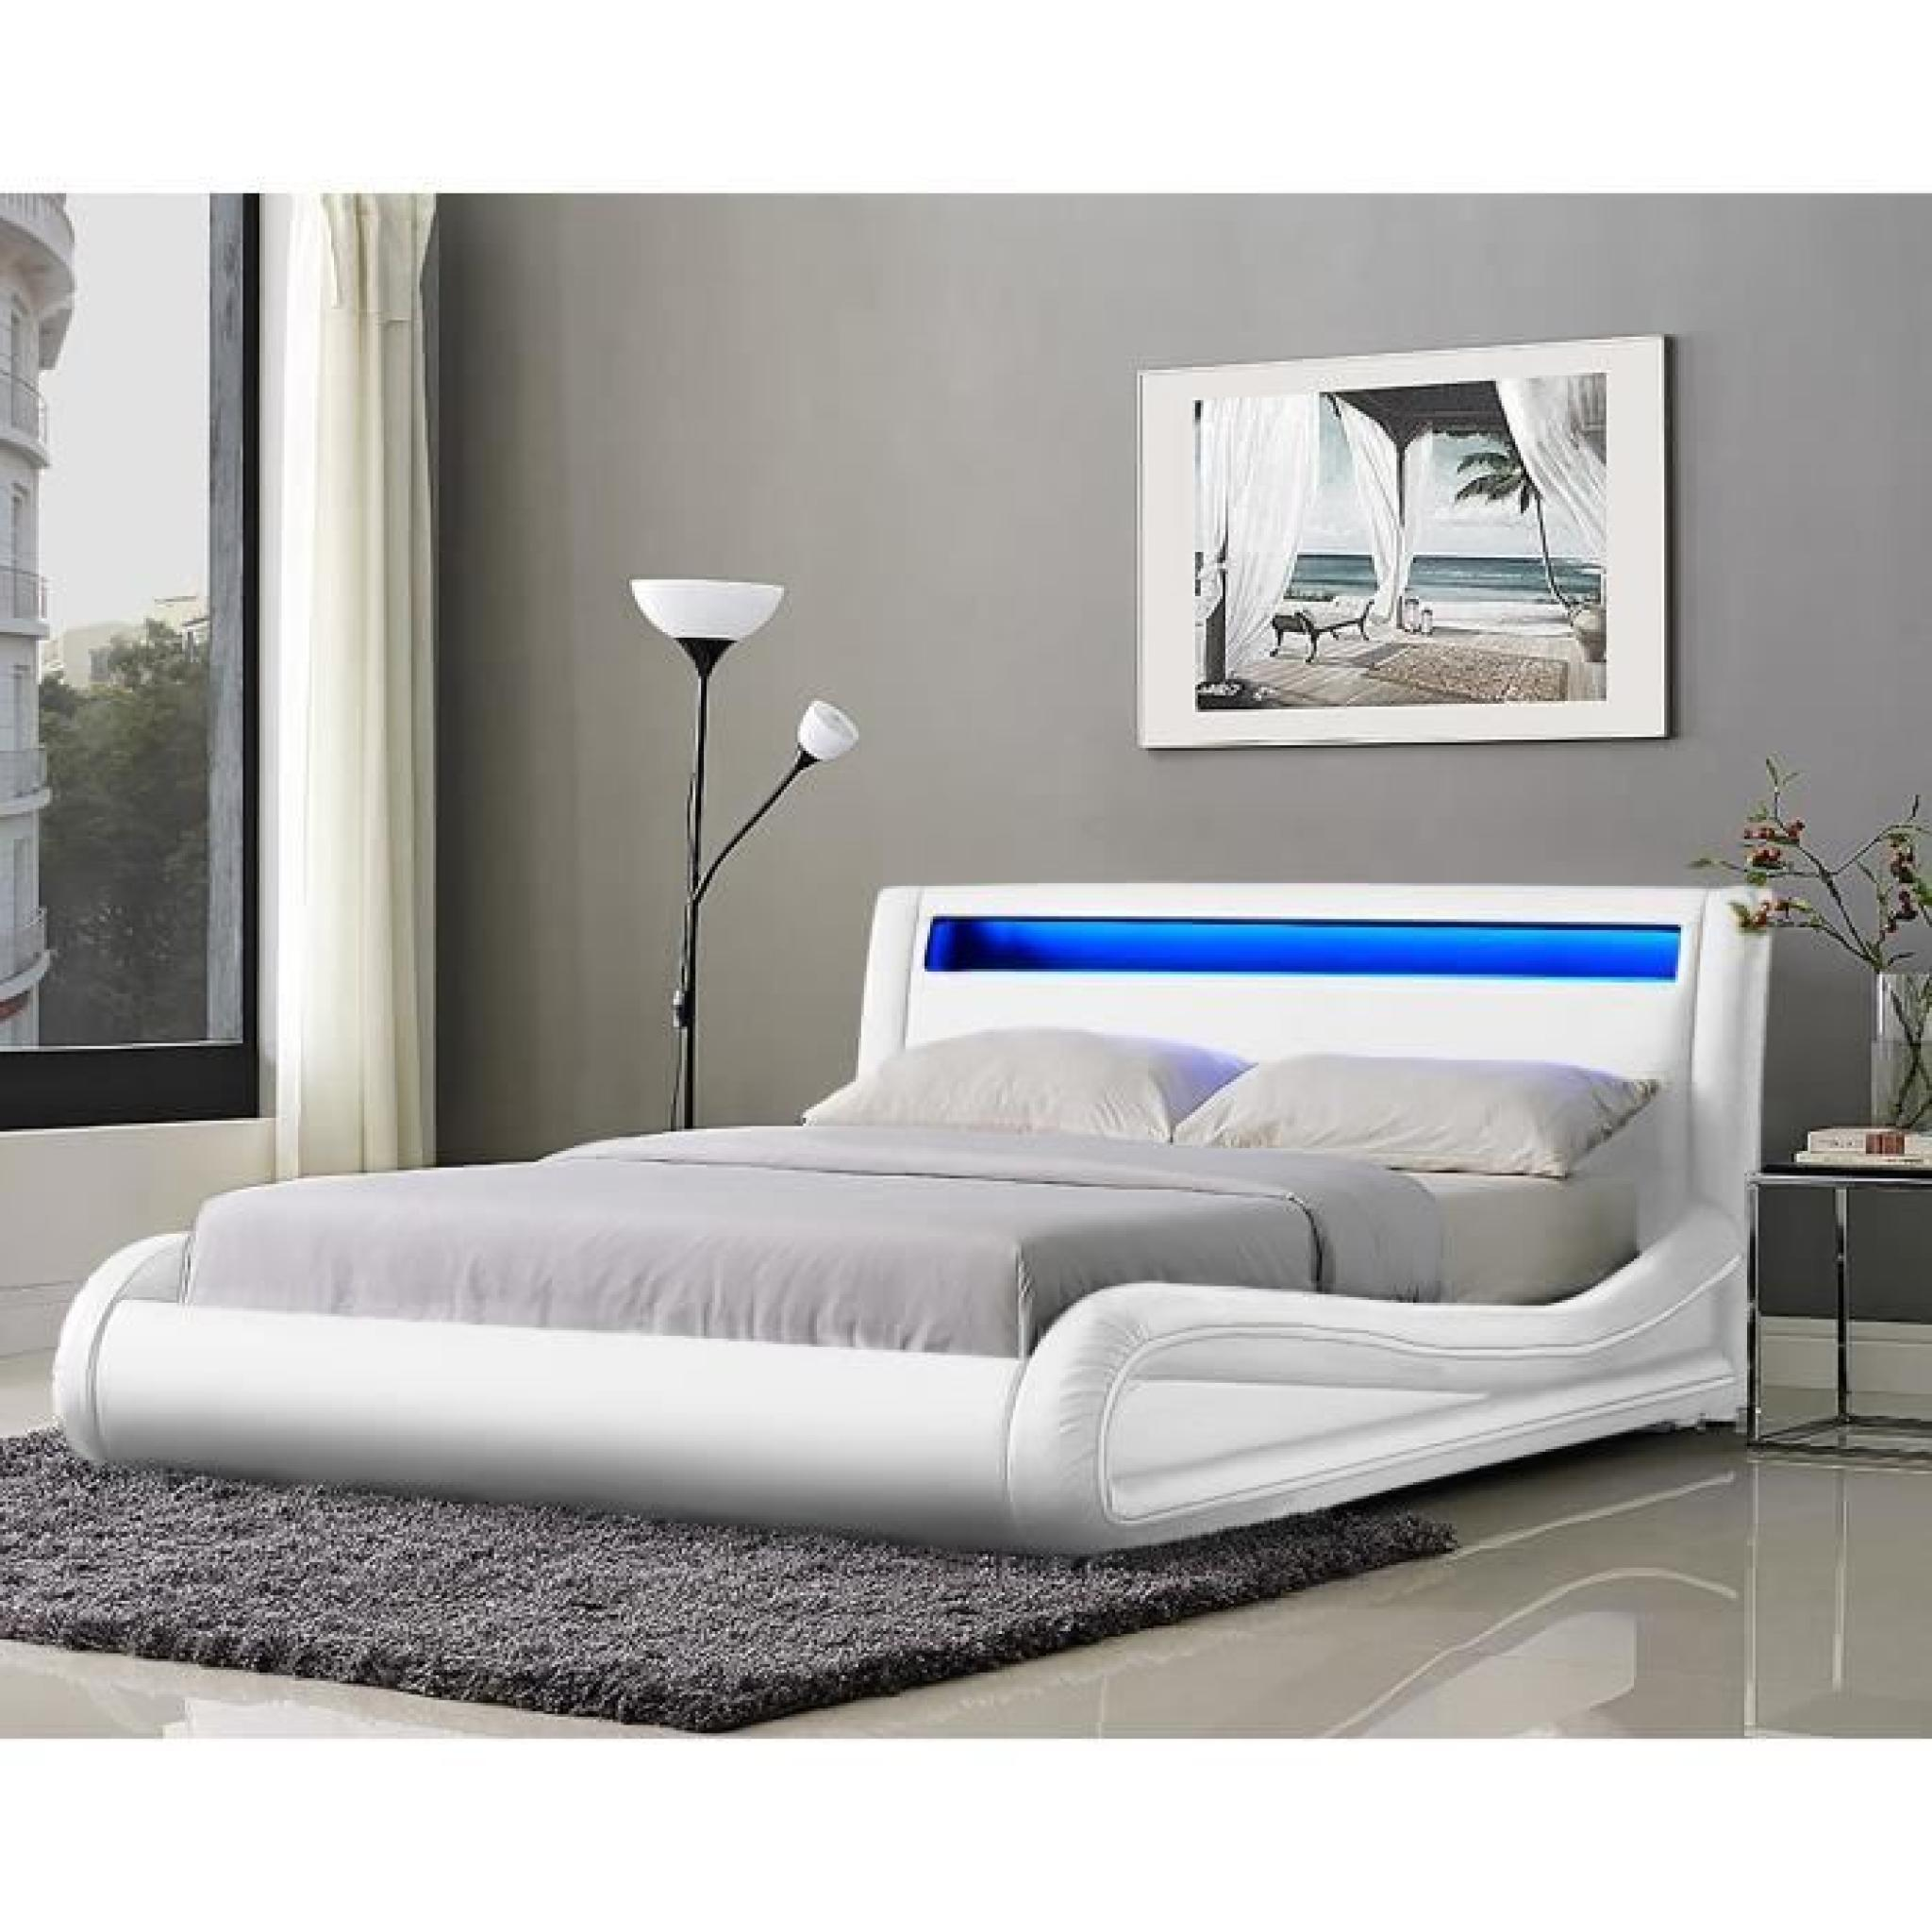 neptune lit adulte avec led 140x190cm blanc sommier. Black Bedroom Furniture Sets. Home Design Ideas